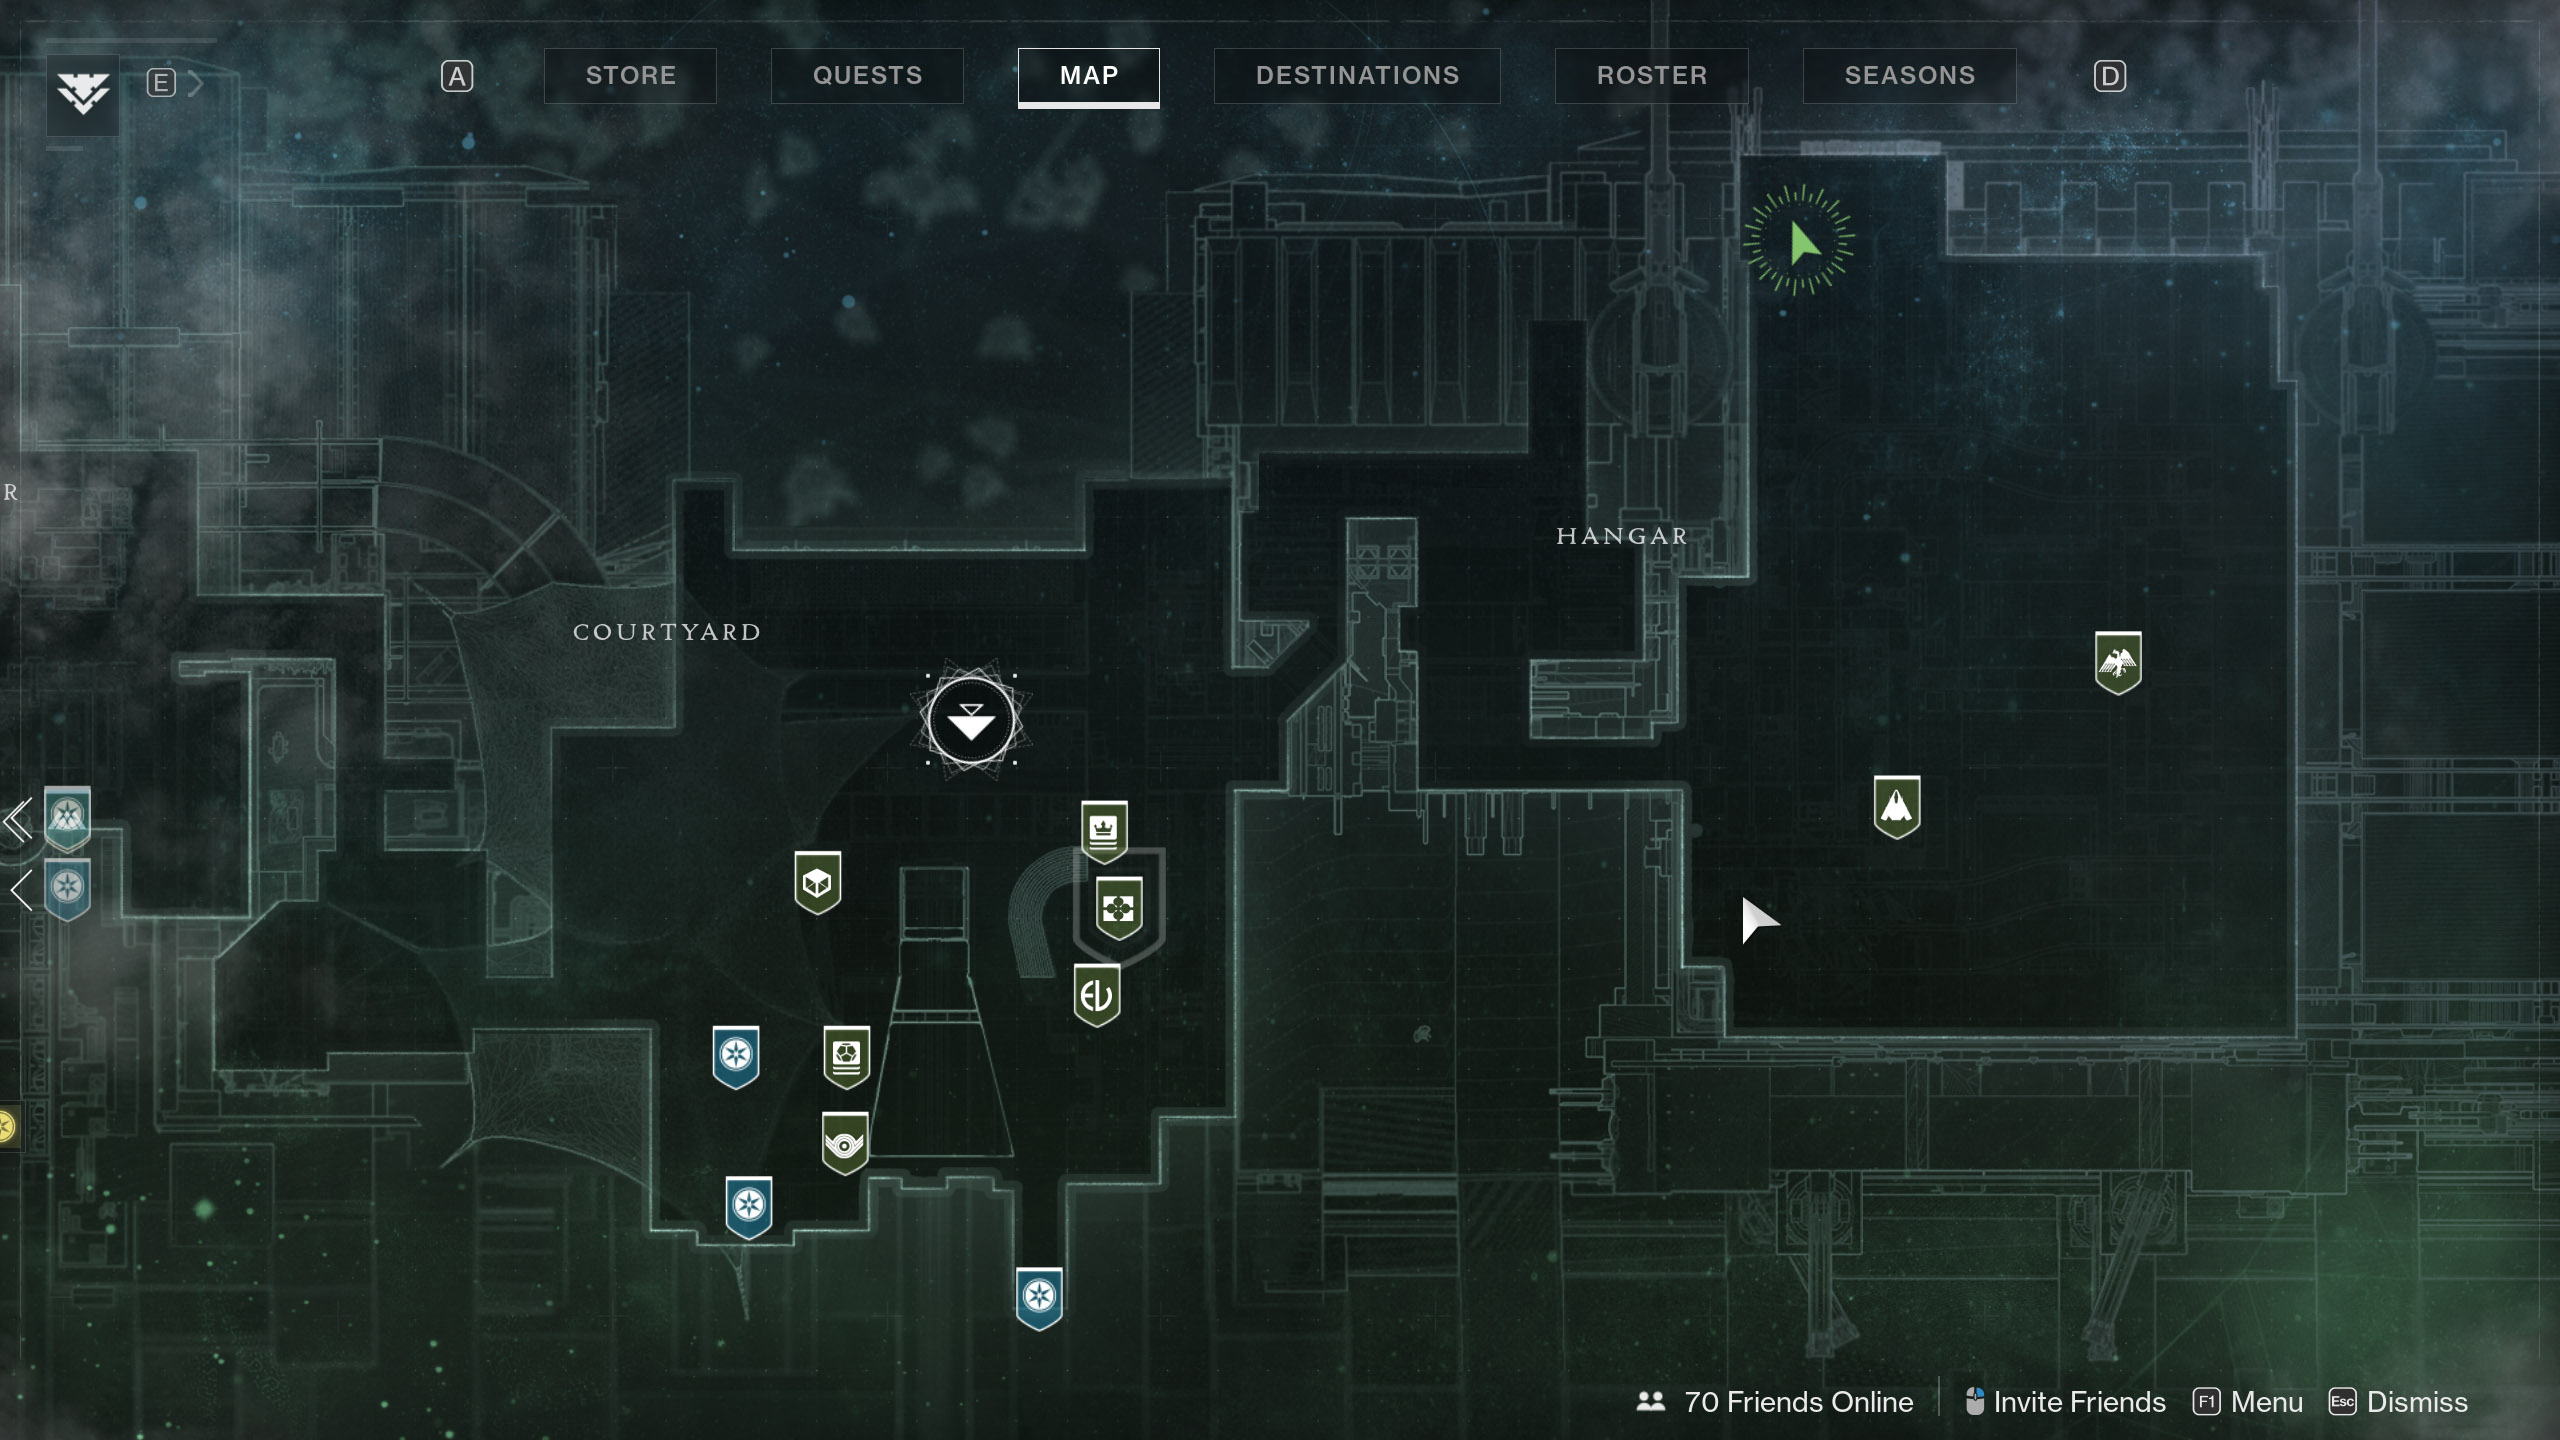 Xur can be found in the Tower Hangar